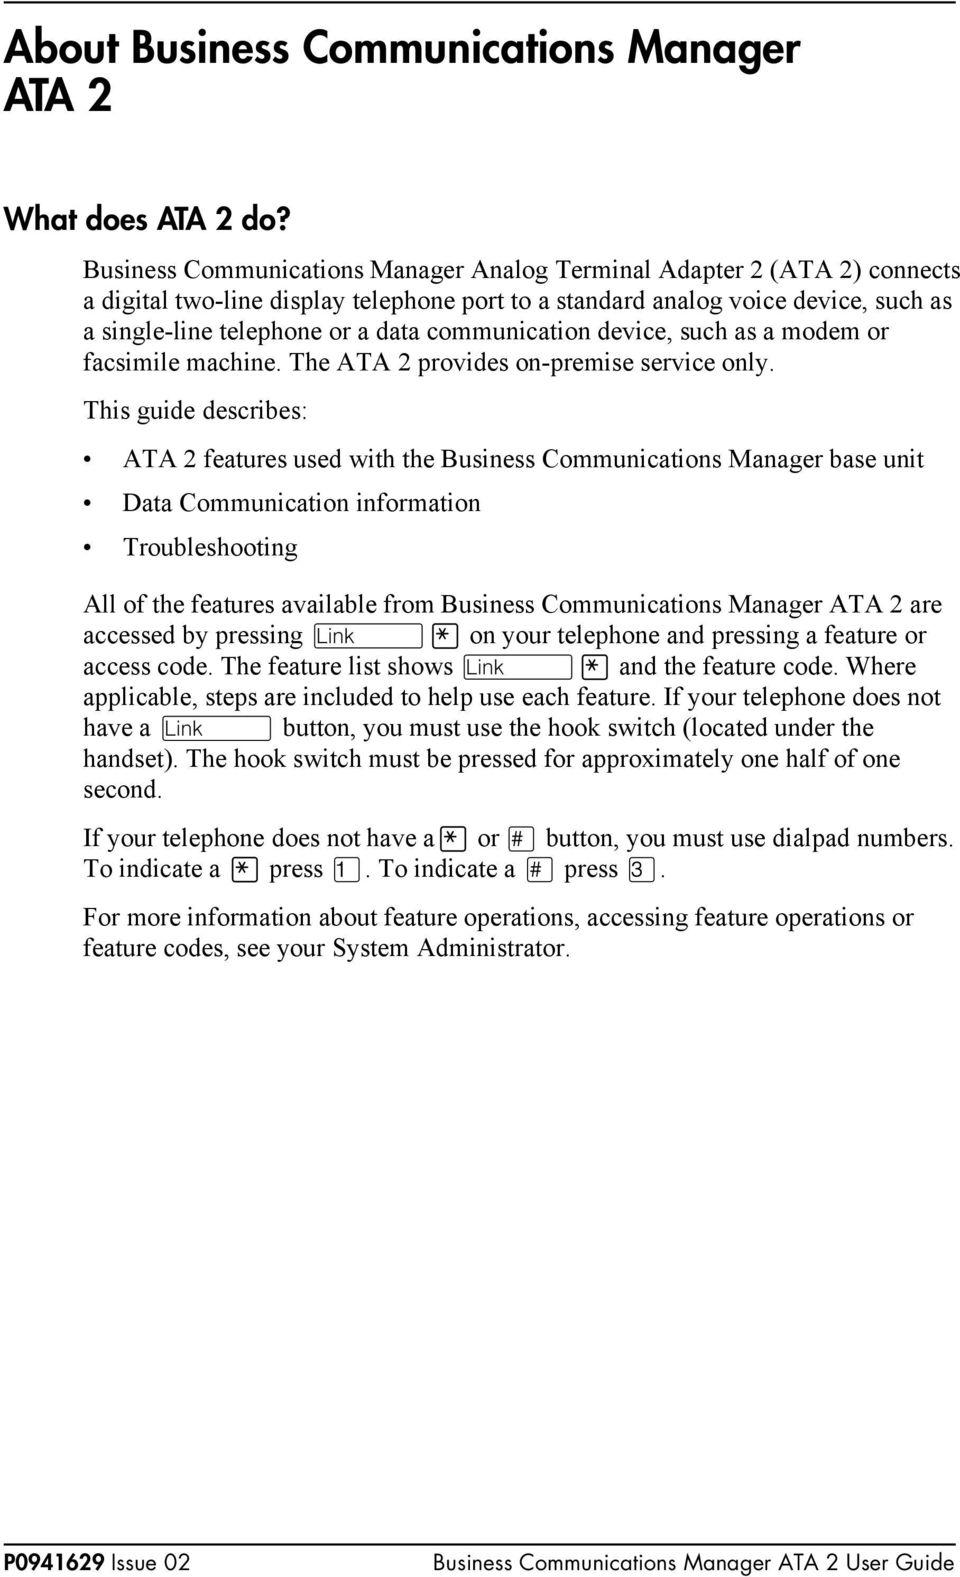 communication device, such as a modem or facsimile machine. The ATA 2 provides on-premise service only.